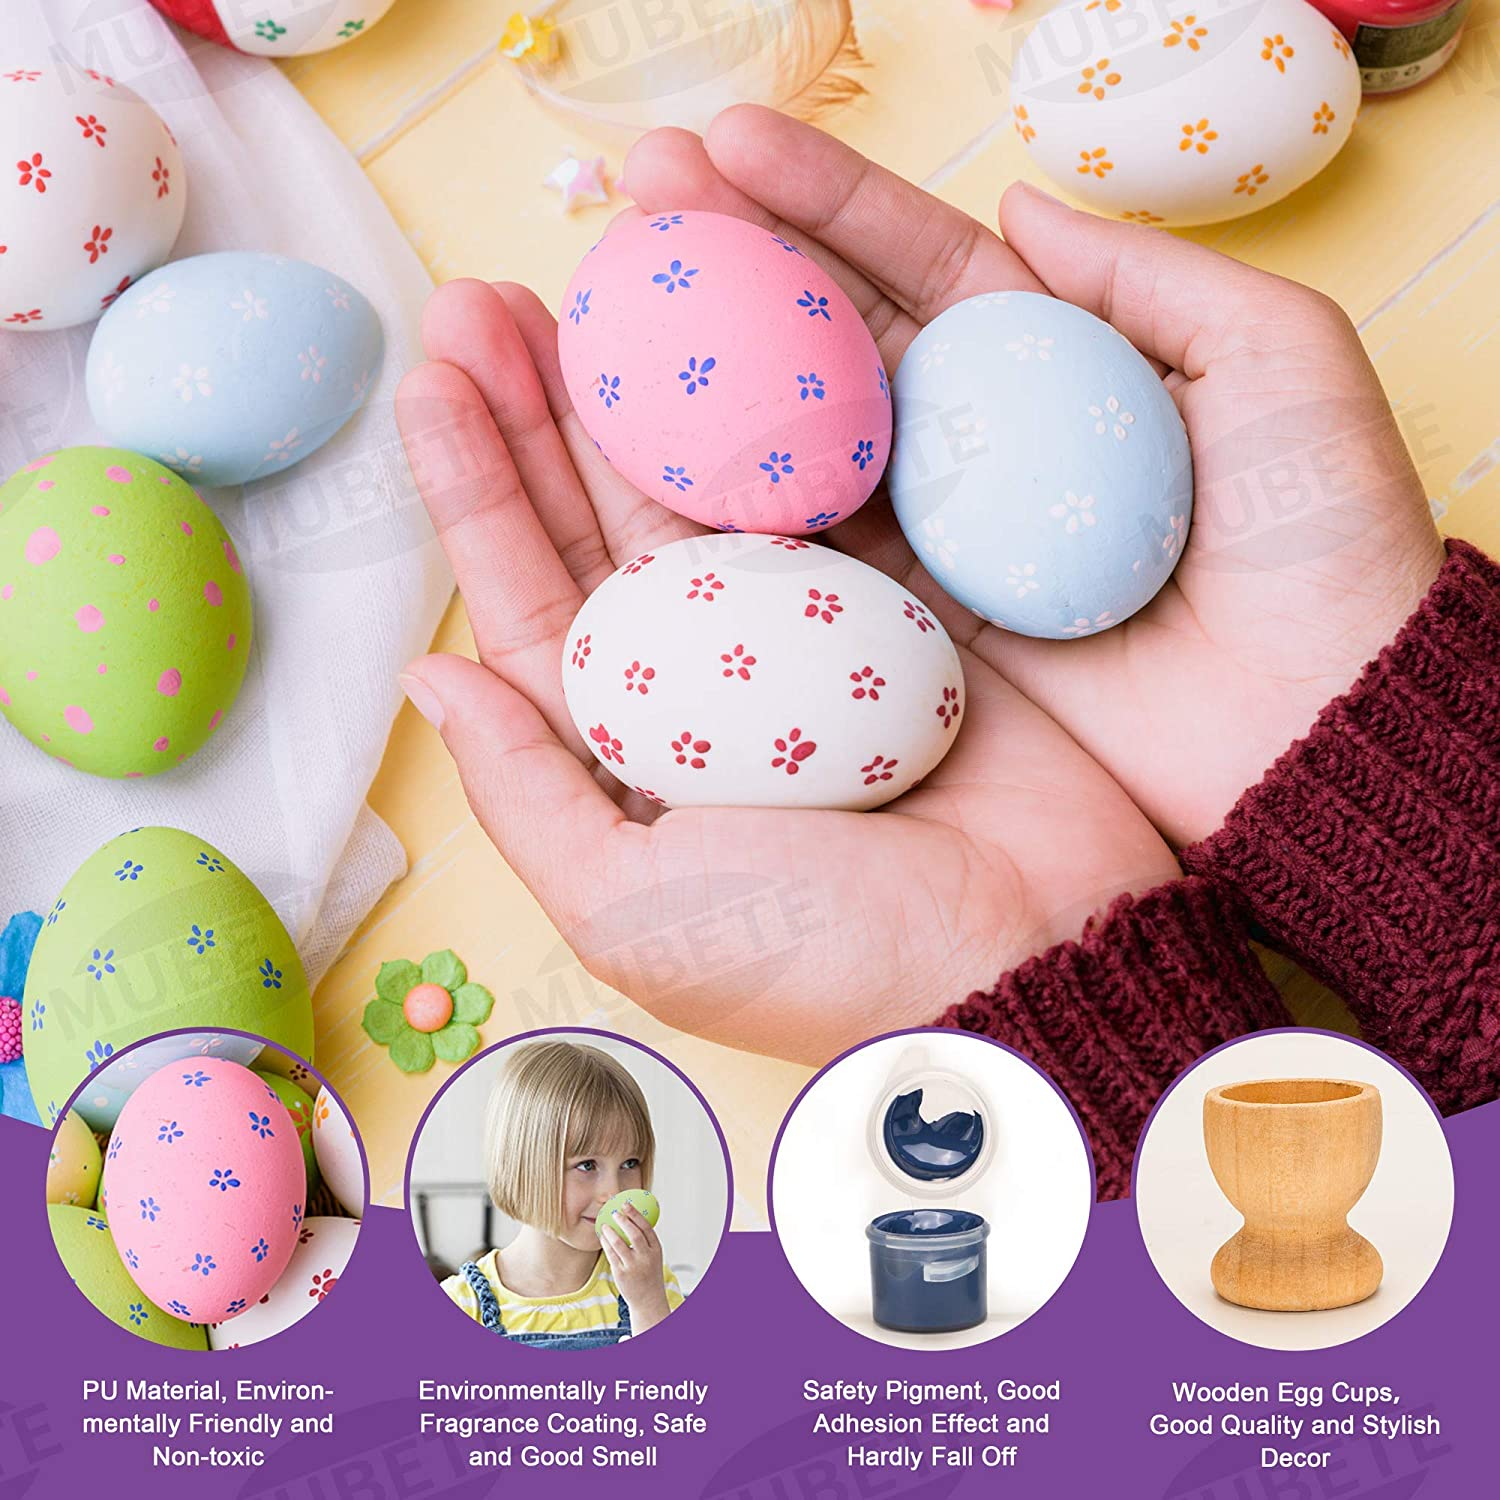 Colorful MUBETE Squishy Easter Eggs Painting Kit Arts and Crafts for Kids 4 and up Color Your Own Easter Decorations Egg DIY Squishies Painting Toys Gift for Boys,Girls